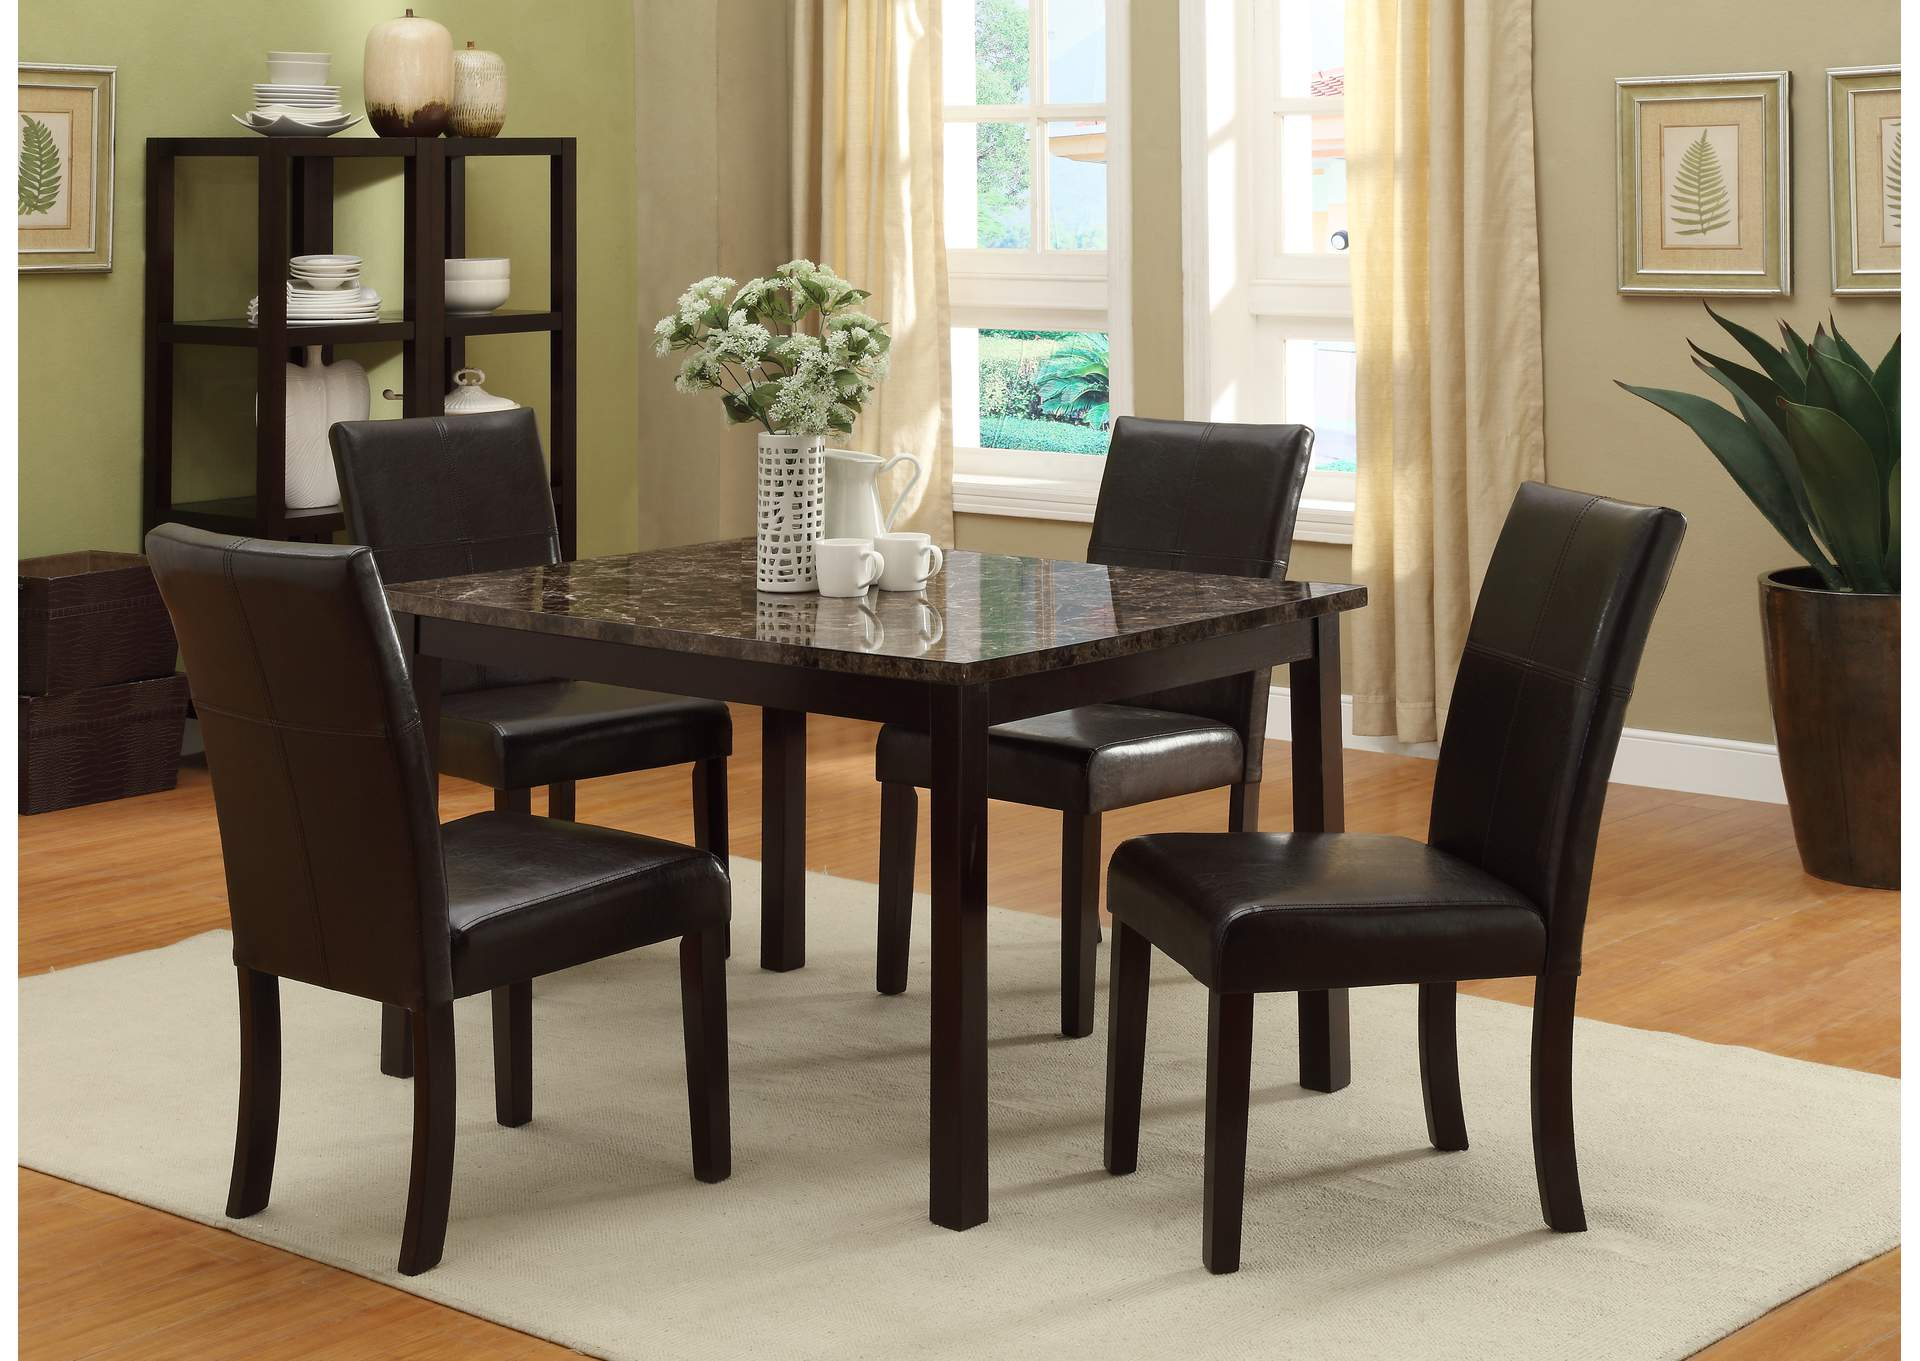 5th Avenue Furniture Mi Pompeii Dining Table W 4 Side Chairs